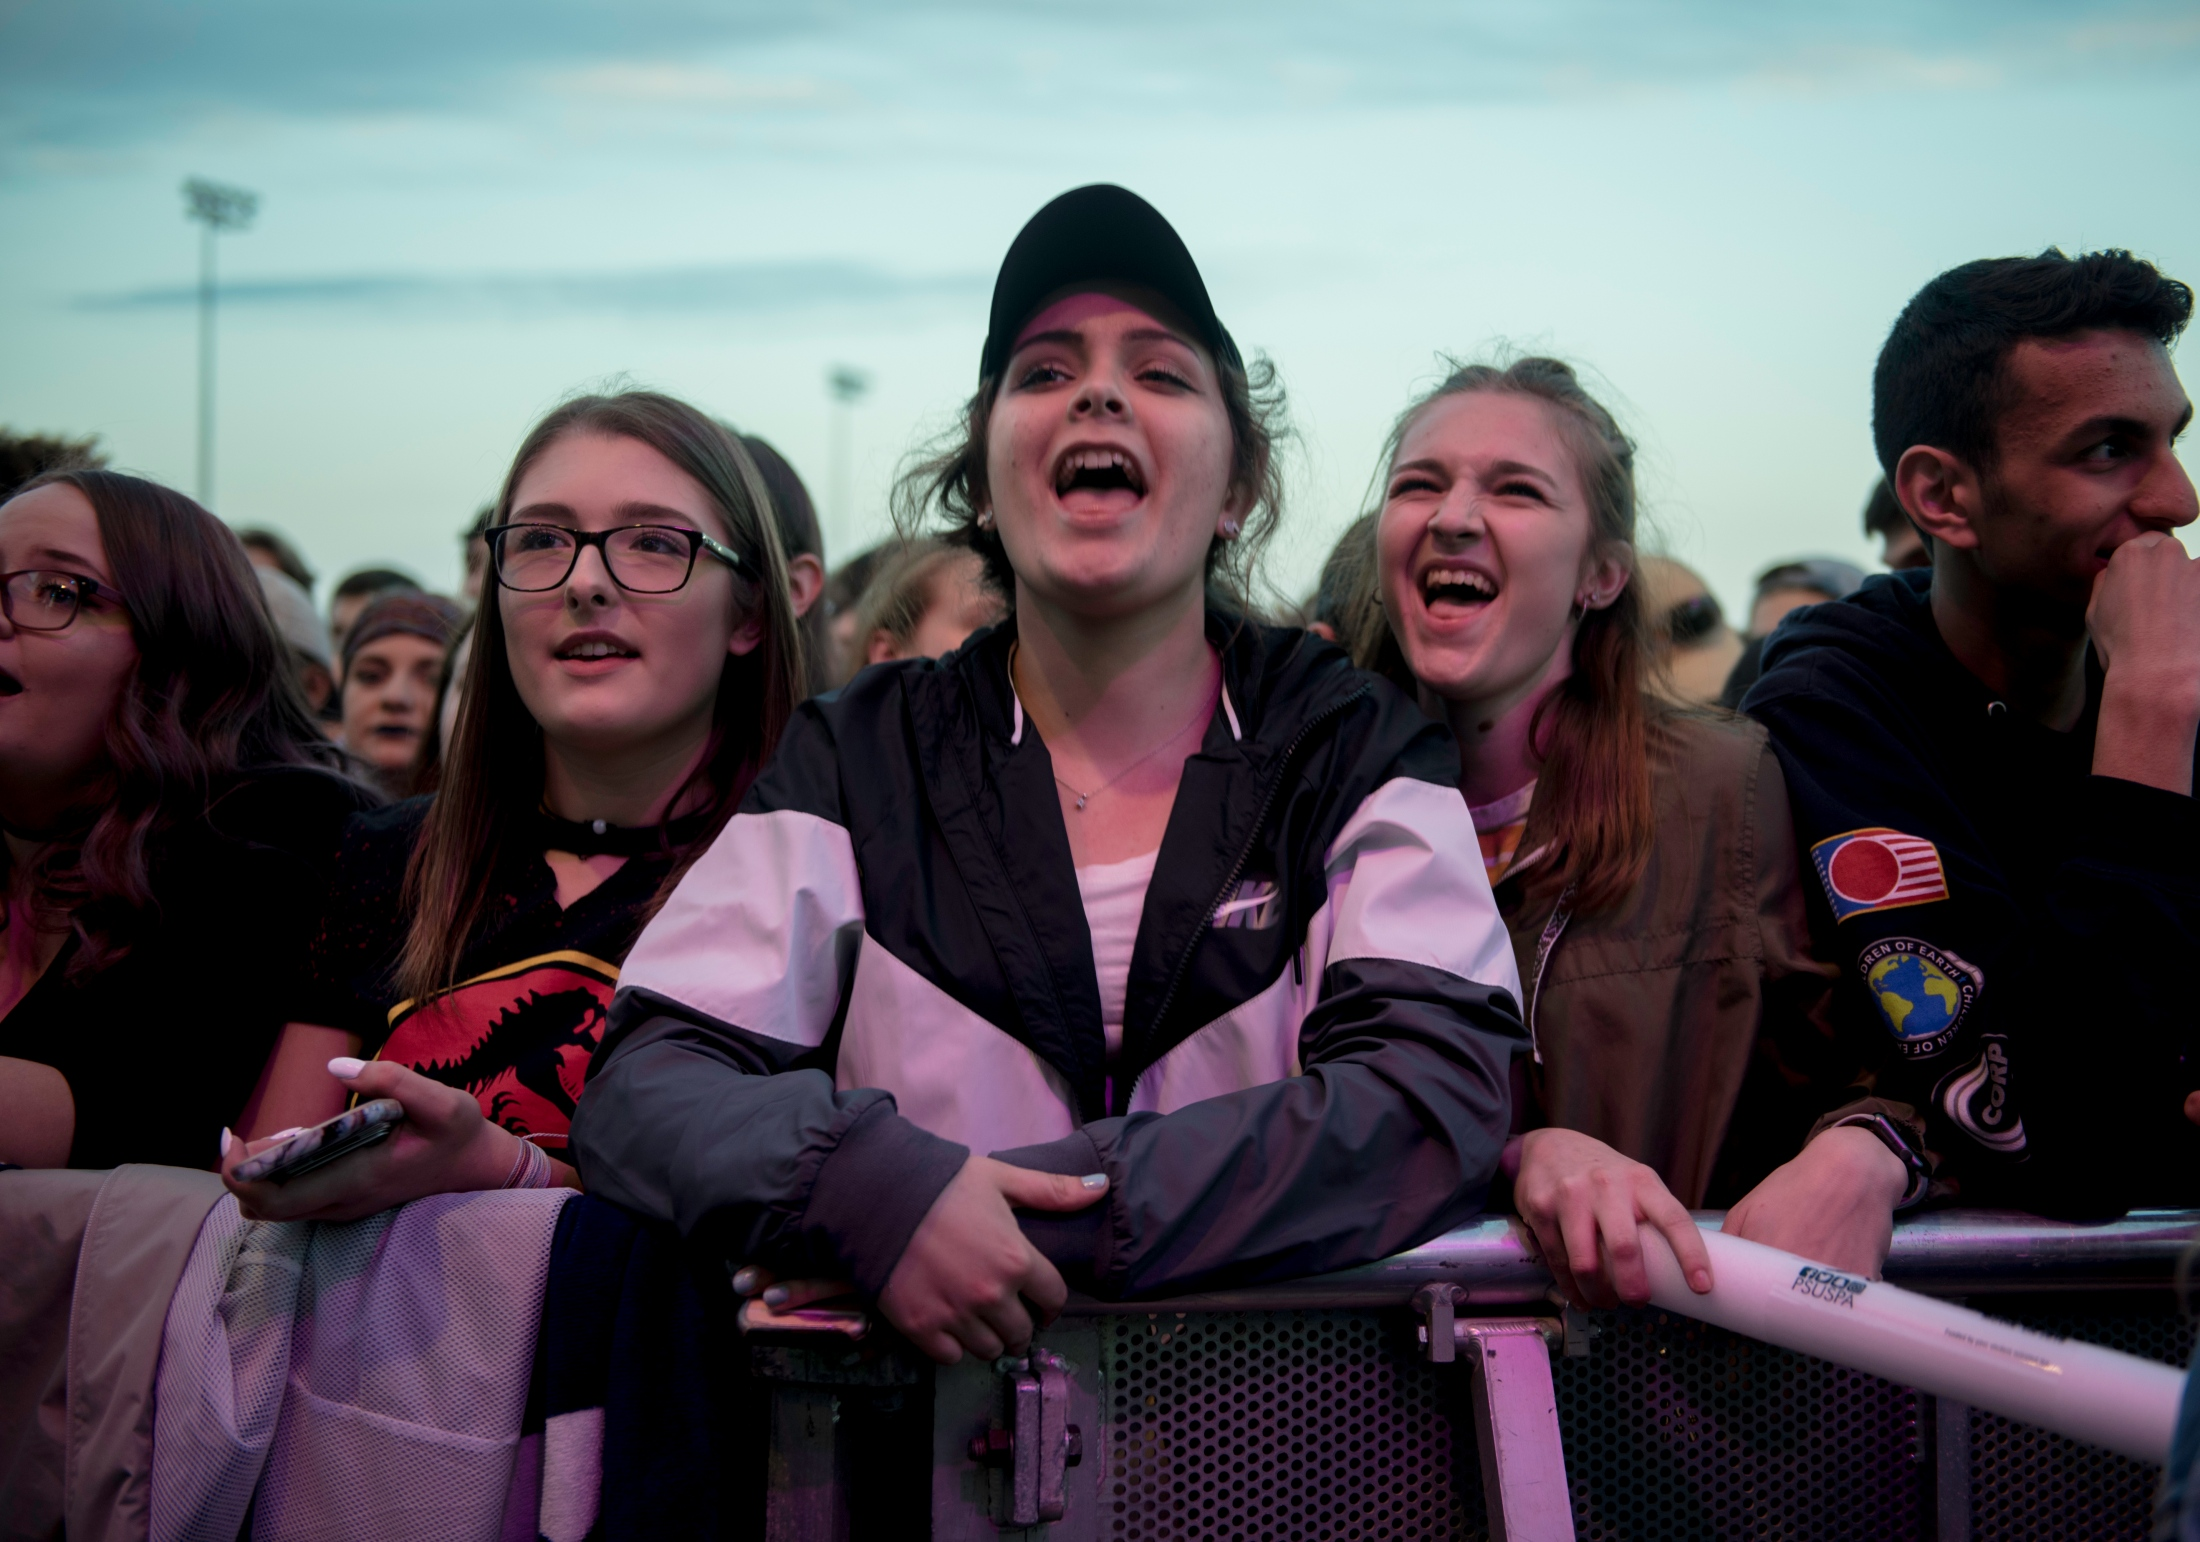 Music fans watch the Movin On Concert at Penn State University, in State College, PA, on April 27, 2018.